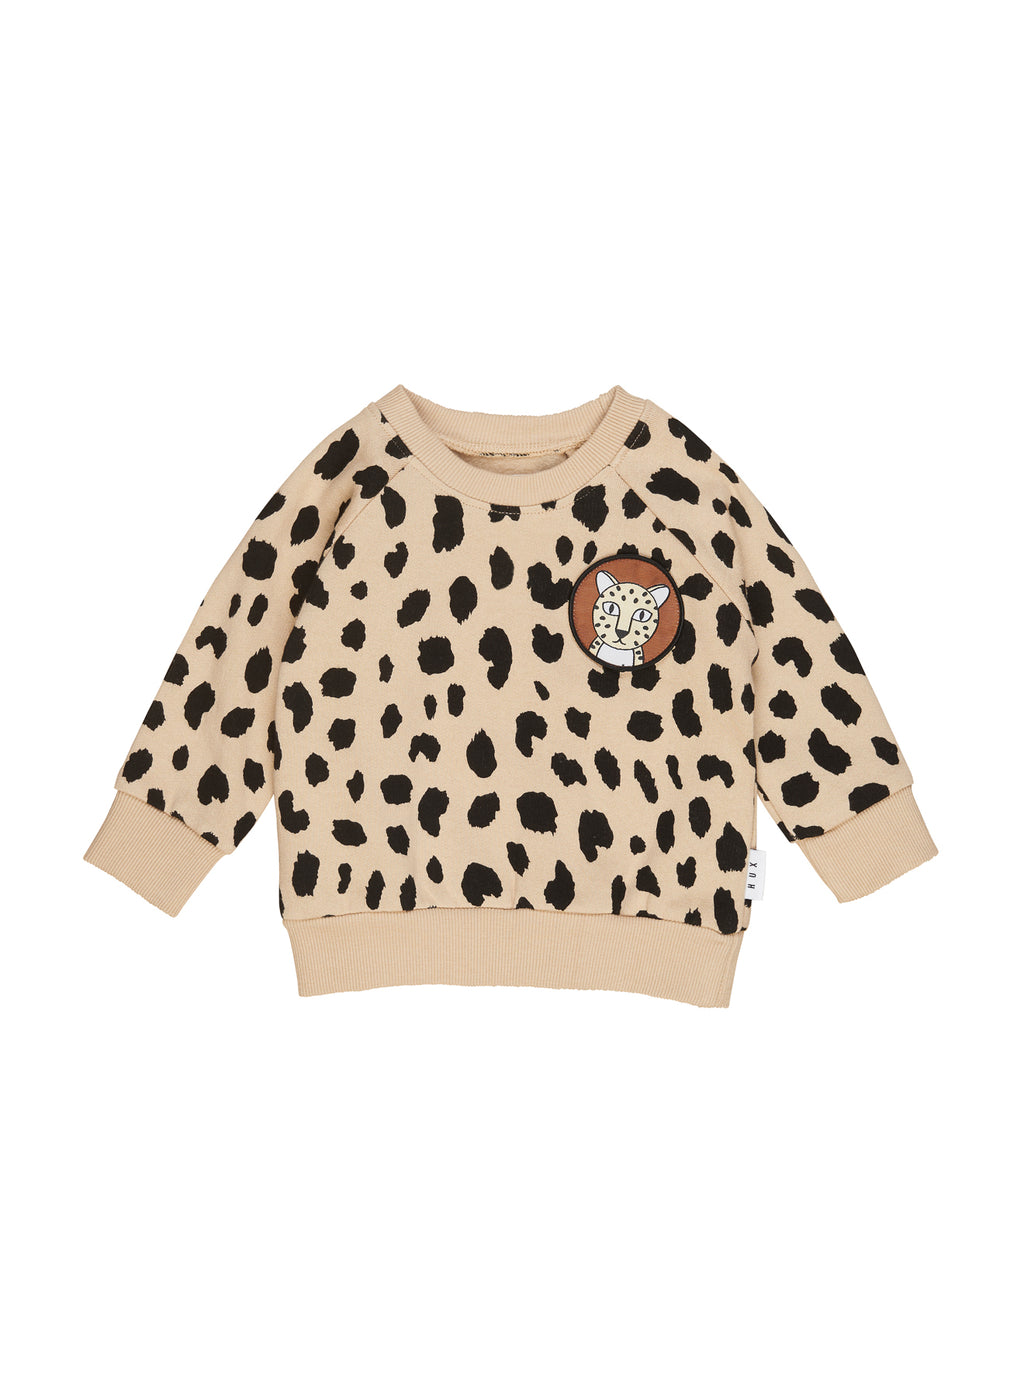 Huxbaby_Animal Spot Sweatshirt - The Child Hood